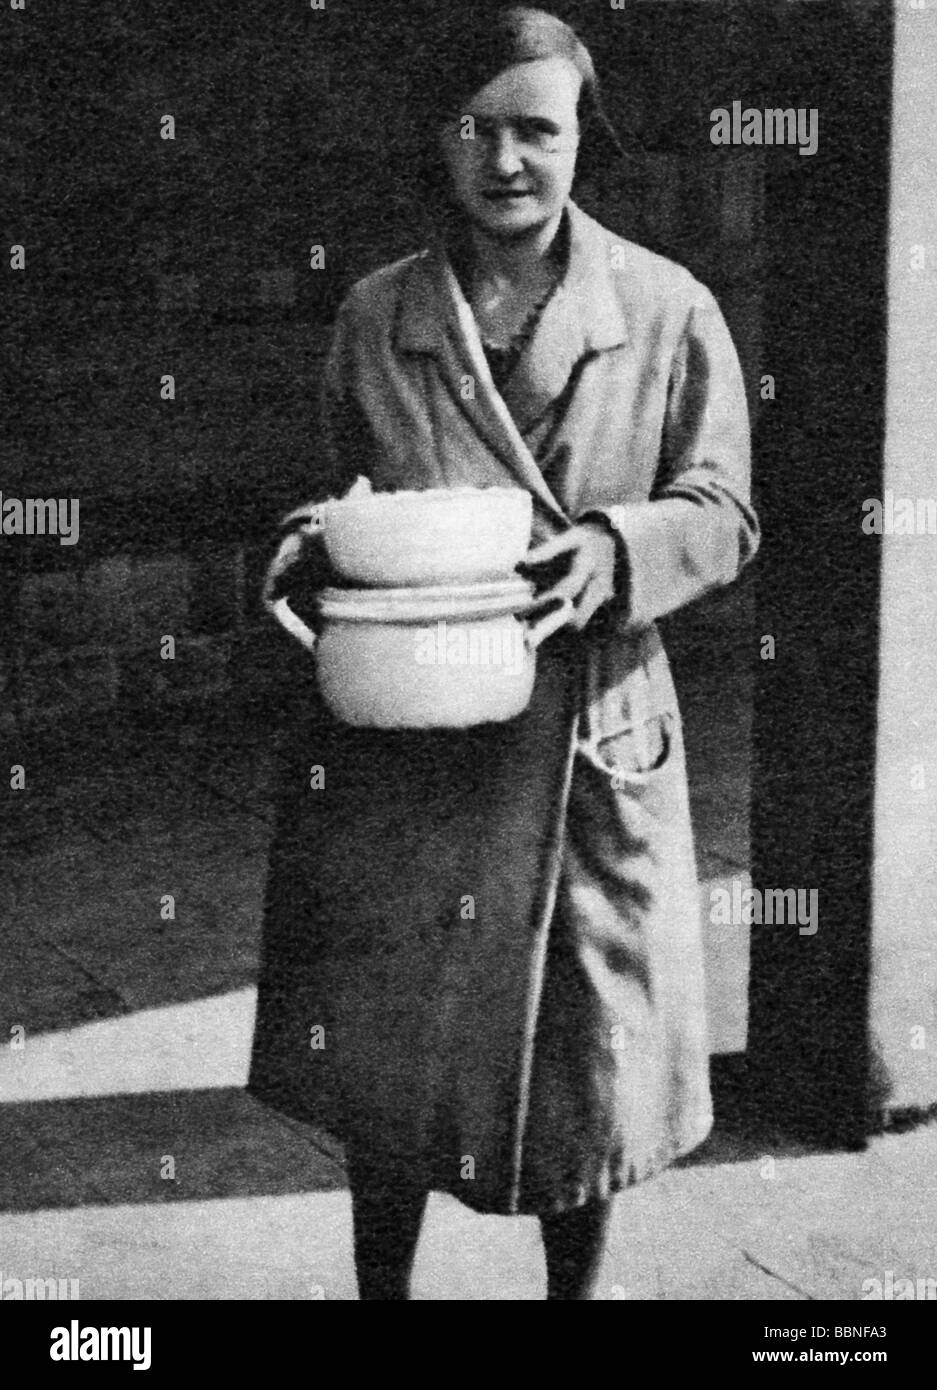 events, Great Depression 1929 - 1933, woman with soup bowl on her way to get food from the soup kitchen, Germany, - Stock Image